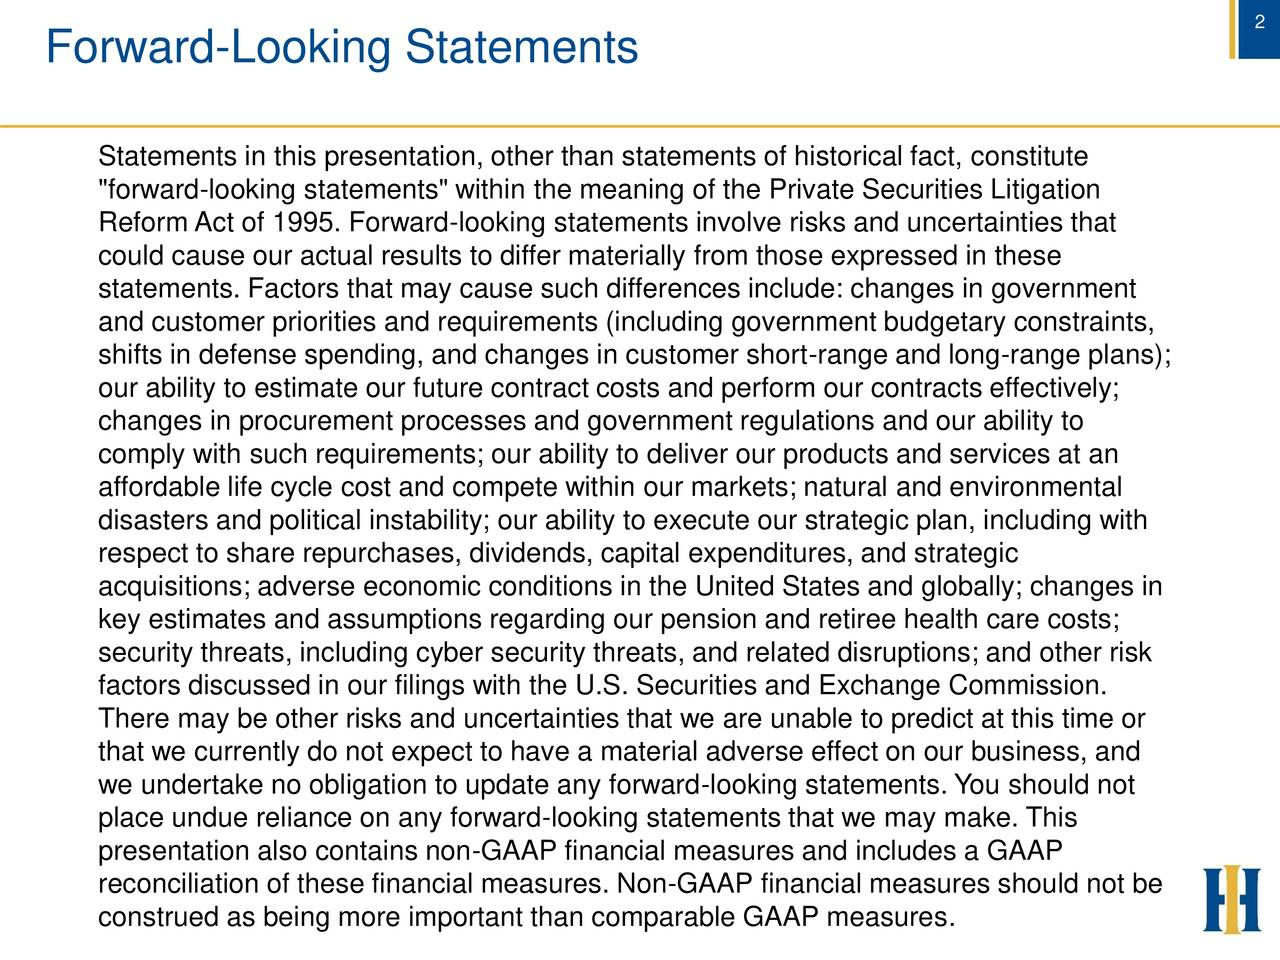 """Forward-Looking Statements Statements in this presentation, other than statements of historical fact, constitute """"forward-looking statements"""" within the meaning of the Private Securities Litigation Reform Act of 1995. Forward-looking statements involve risks and uncertainties that could cause our actual results to differ materially from those expressed in these statements. Factors that may cause such differences include: changes in government and customer priorities and requirements (including government budgetary constraints, shifts in defense spending, and changes in customer short-range and long-range plans); our ability to estimate our future contract costs and perform our contracts effectively; changes in procurement processes and government regulations and our ability to comply with such requirements; our ability to deliver our products and services at an affordable life cycle cost and compete within our markets; natural and environmental disasters and political instability; our ability to execute our strategic plan, including with respect to share repurchases, dividends, capital expenditures, and strategic acquisitions; adverse economic conditions in the United States and globally; changes in key estimates and assumptions regarding our pension and retiree health care costs; security threats, including cyber security threats, and related disruptions; and other risk factors discussed in our filings with the U.S. Securities and Exchange Commission. There may be other risks and uncertainties that we are unable to predict at this time or that we currently do not expect to have a material adverse effect on our business, and we undertake no obligation to update any forward-looking statements. You should not place undue reliance on any forward-looking statements that we may make. This presentation also contains non-GAAP financial measures and includes a GAAP reconciliation of these financial measures. Non-GAAP financial measures should not be construed as being more """